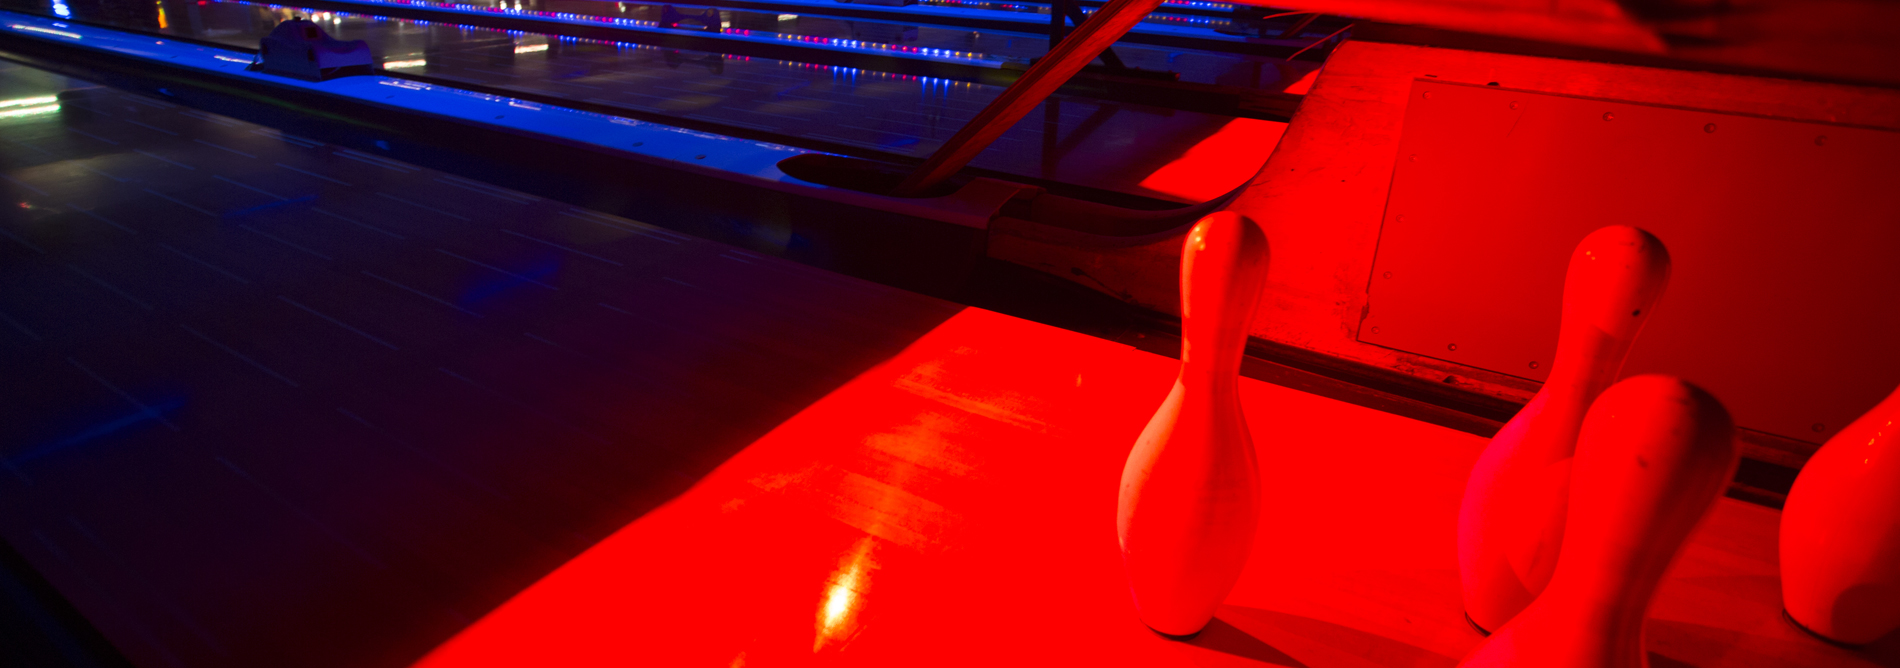 QubicaAMF-bowling-CENTERPUNCH-Pin-Deck-Illumination-Built-for-Bowling-banner.jpg